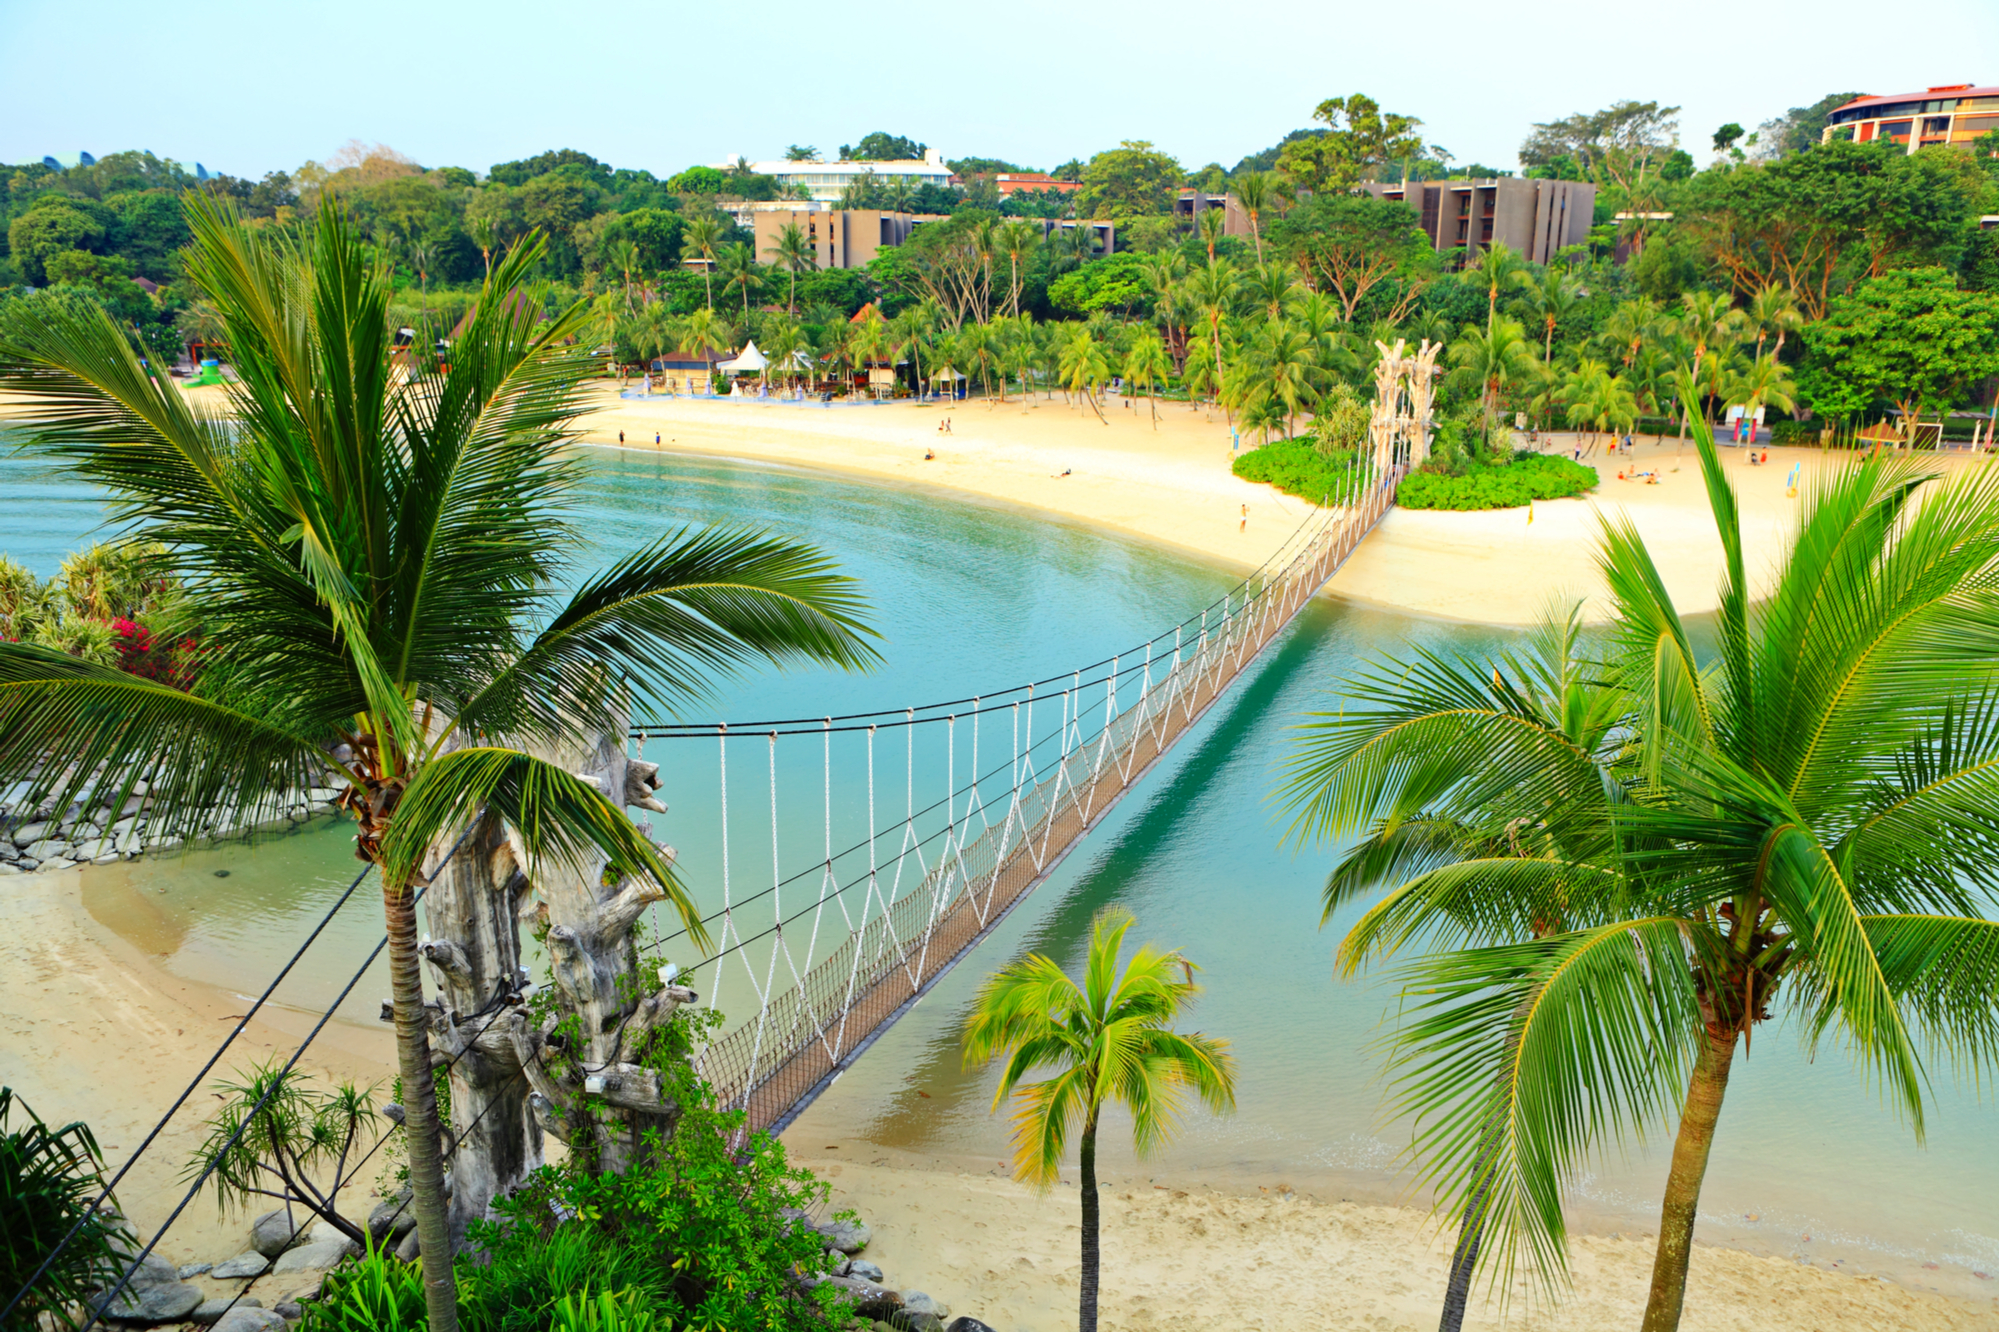 A beautiful lagoon surrounded by palm trees with a rope bridge crossing the water on Sentosa Island